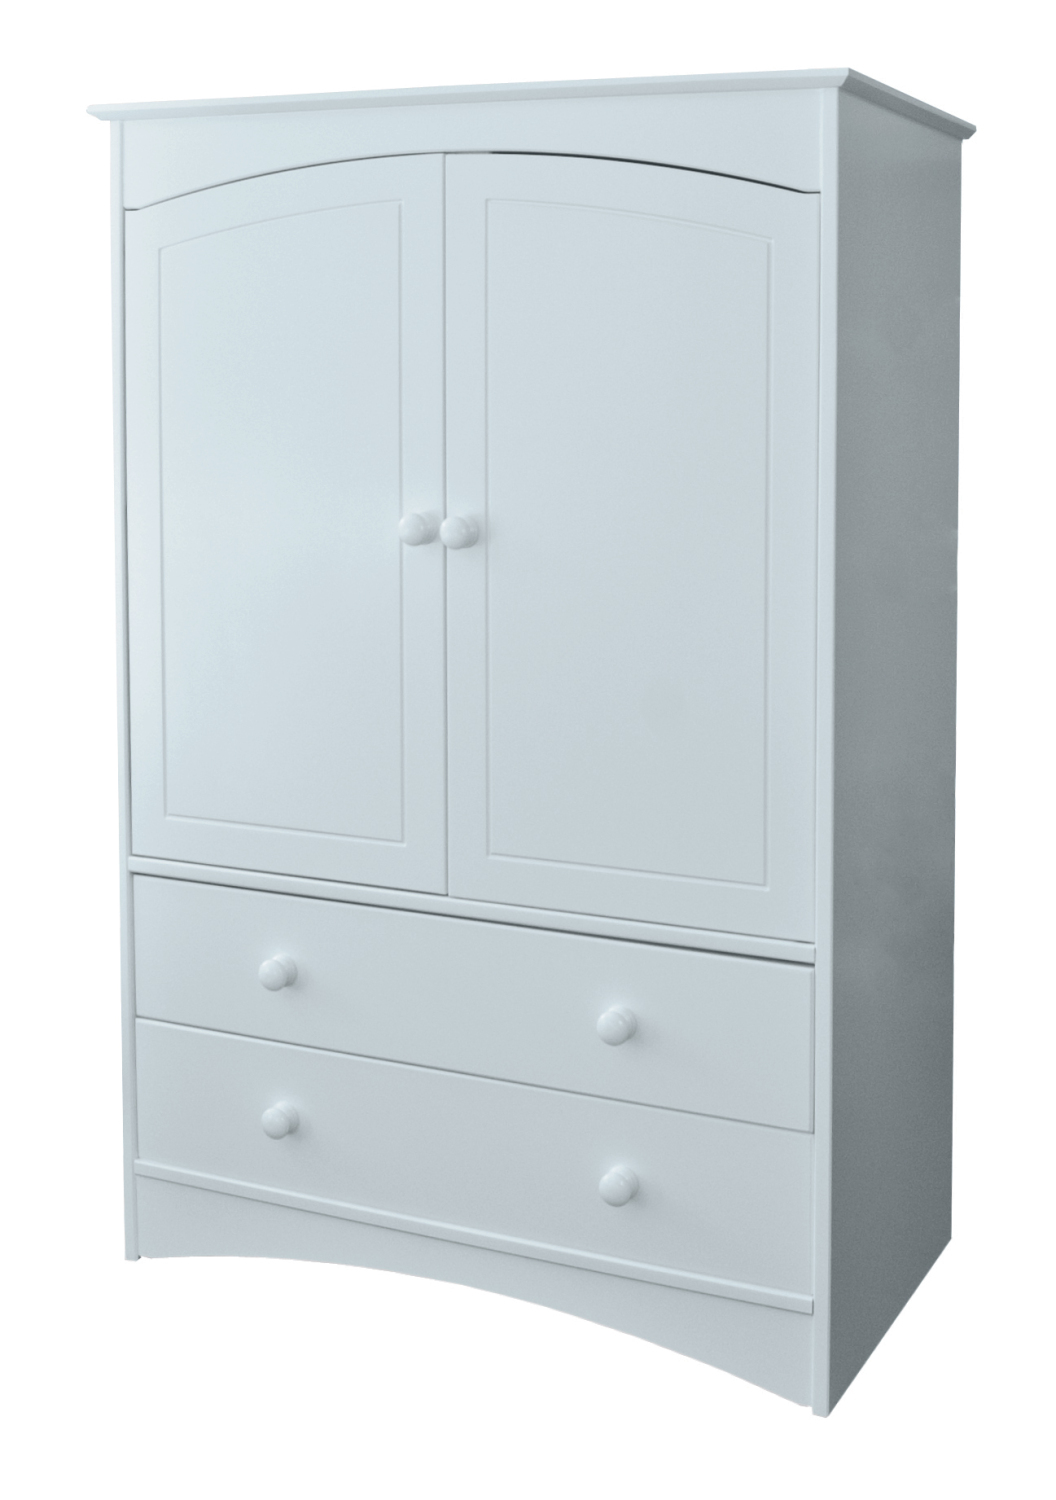 Lighthouse Small 2 Drawer Wardrobe